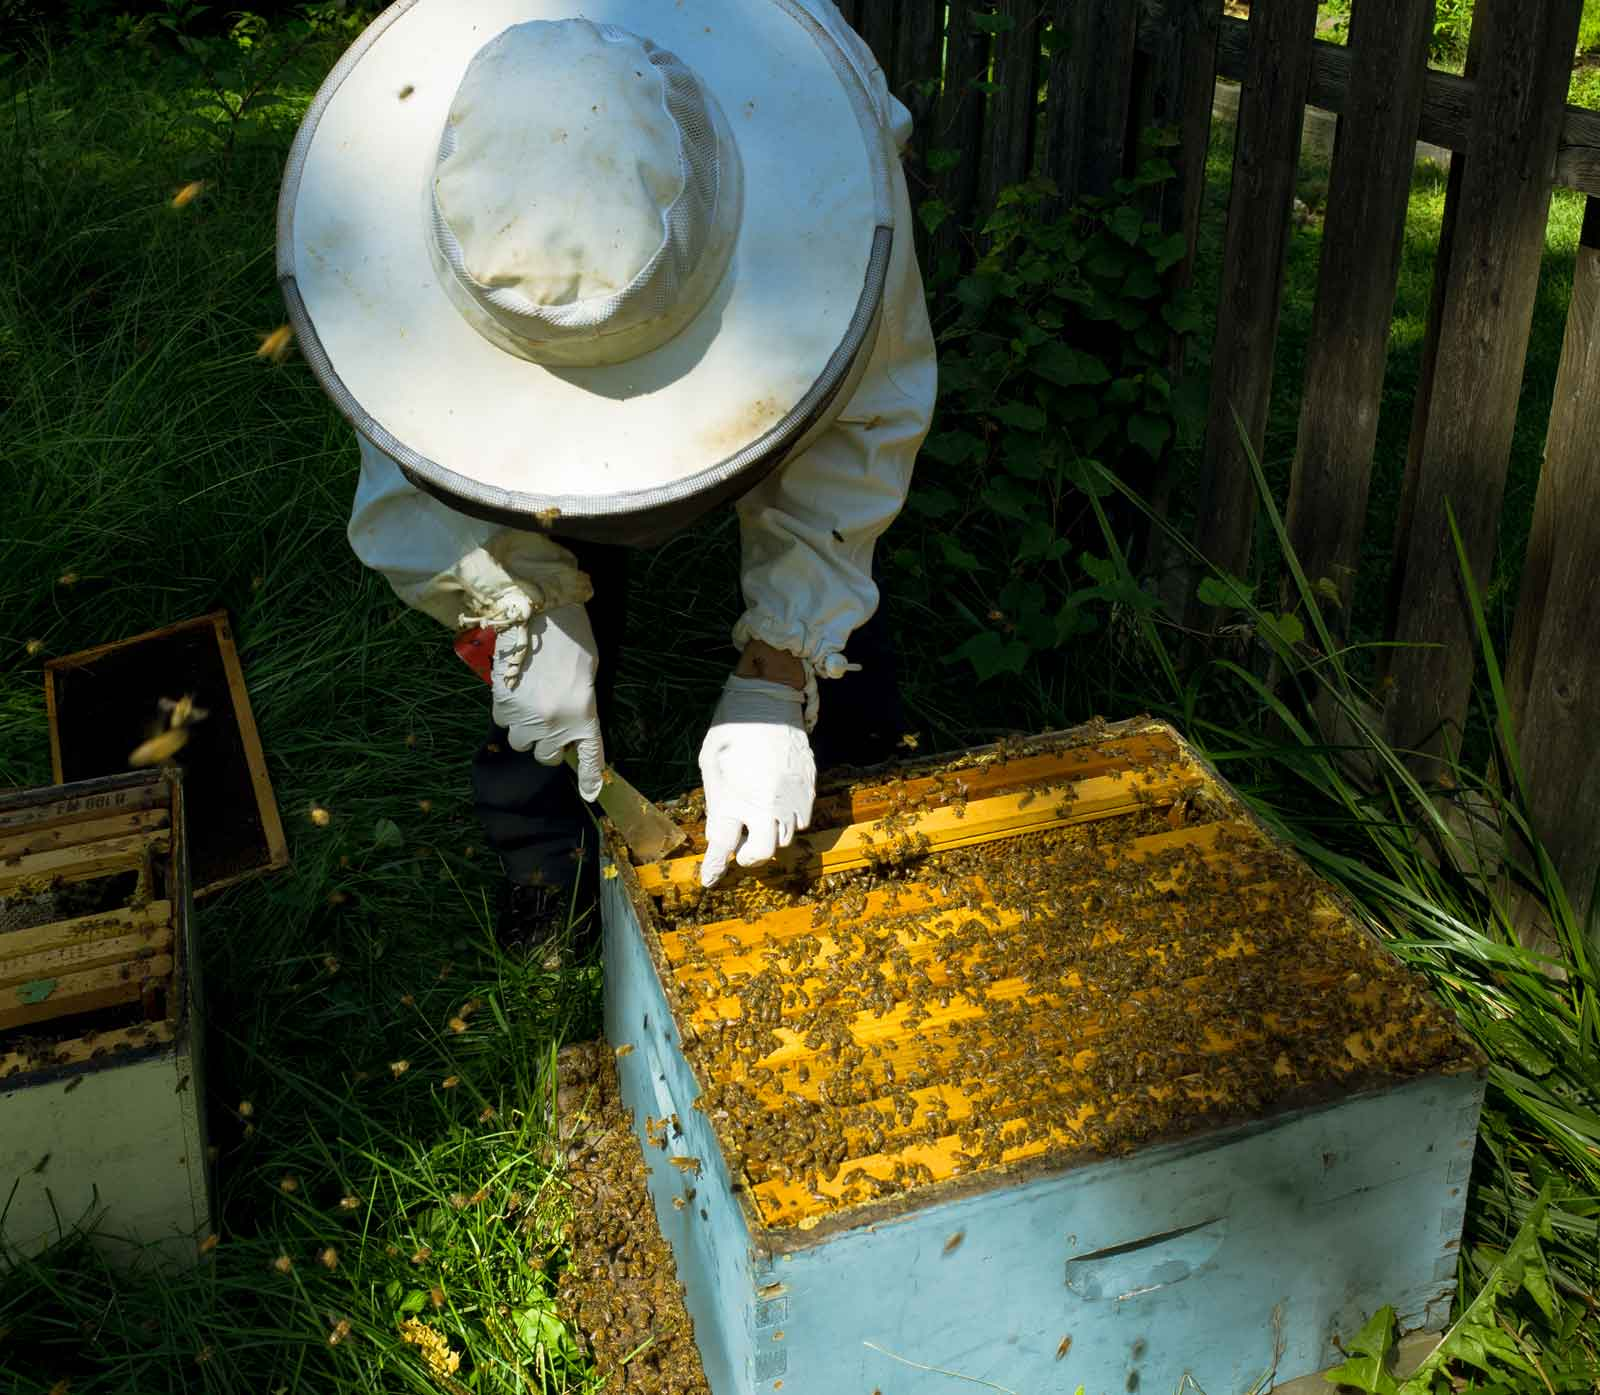 Inspecting a May swarm hive